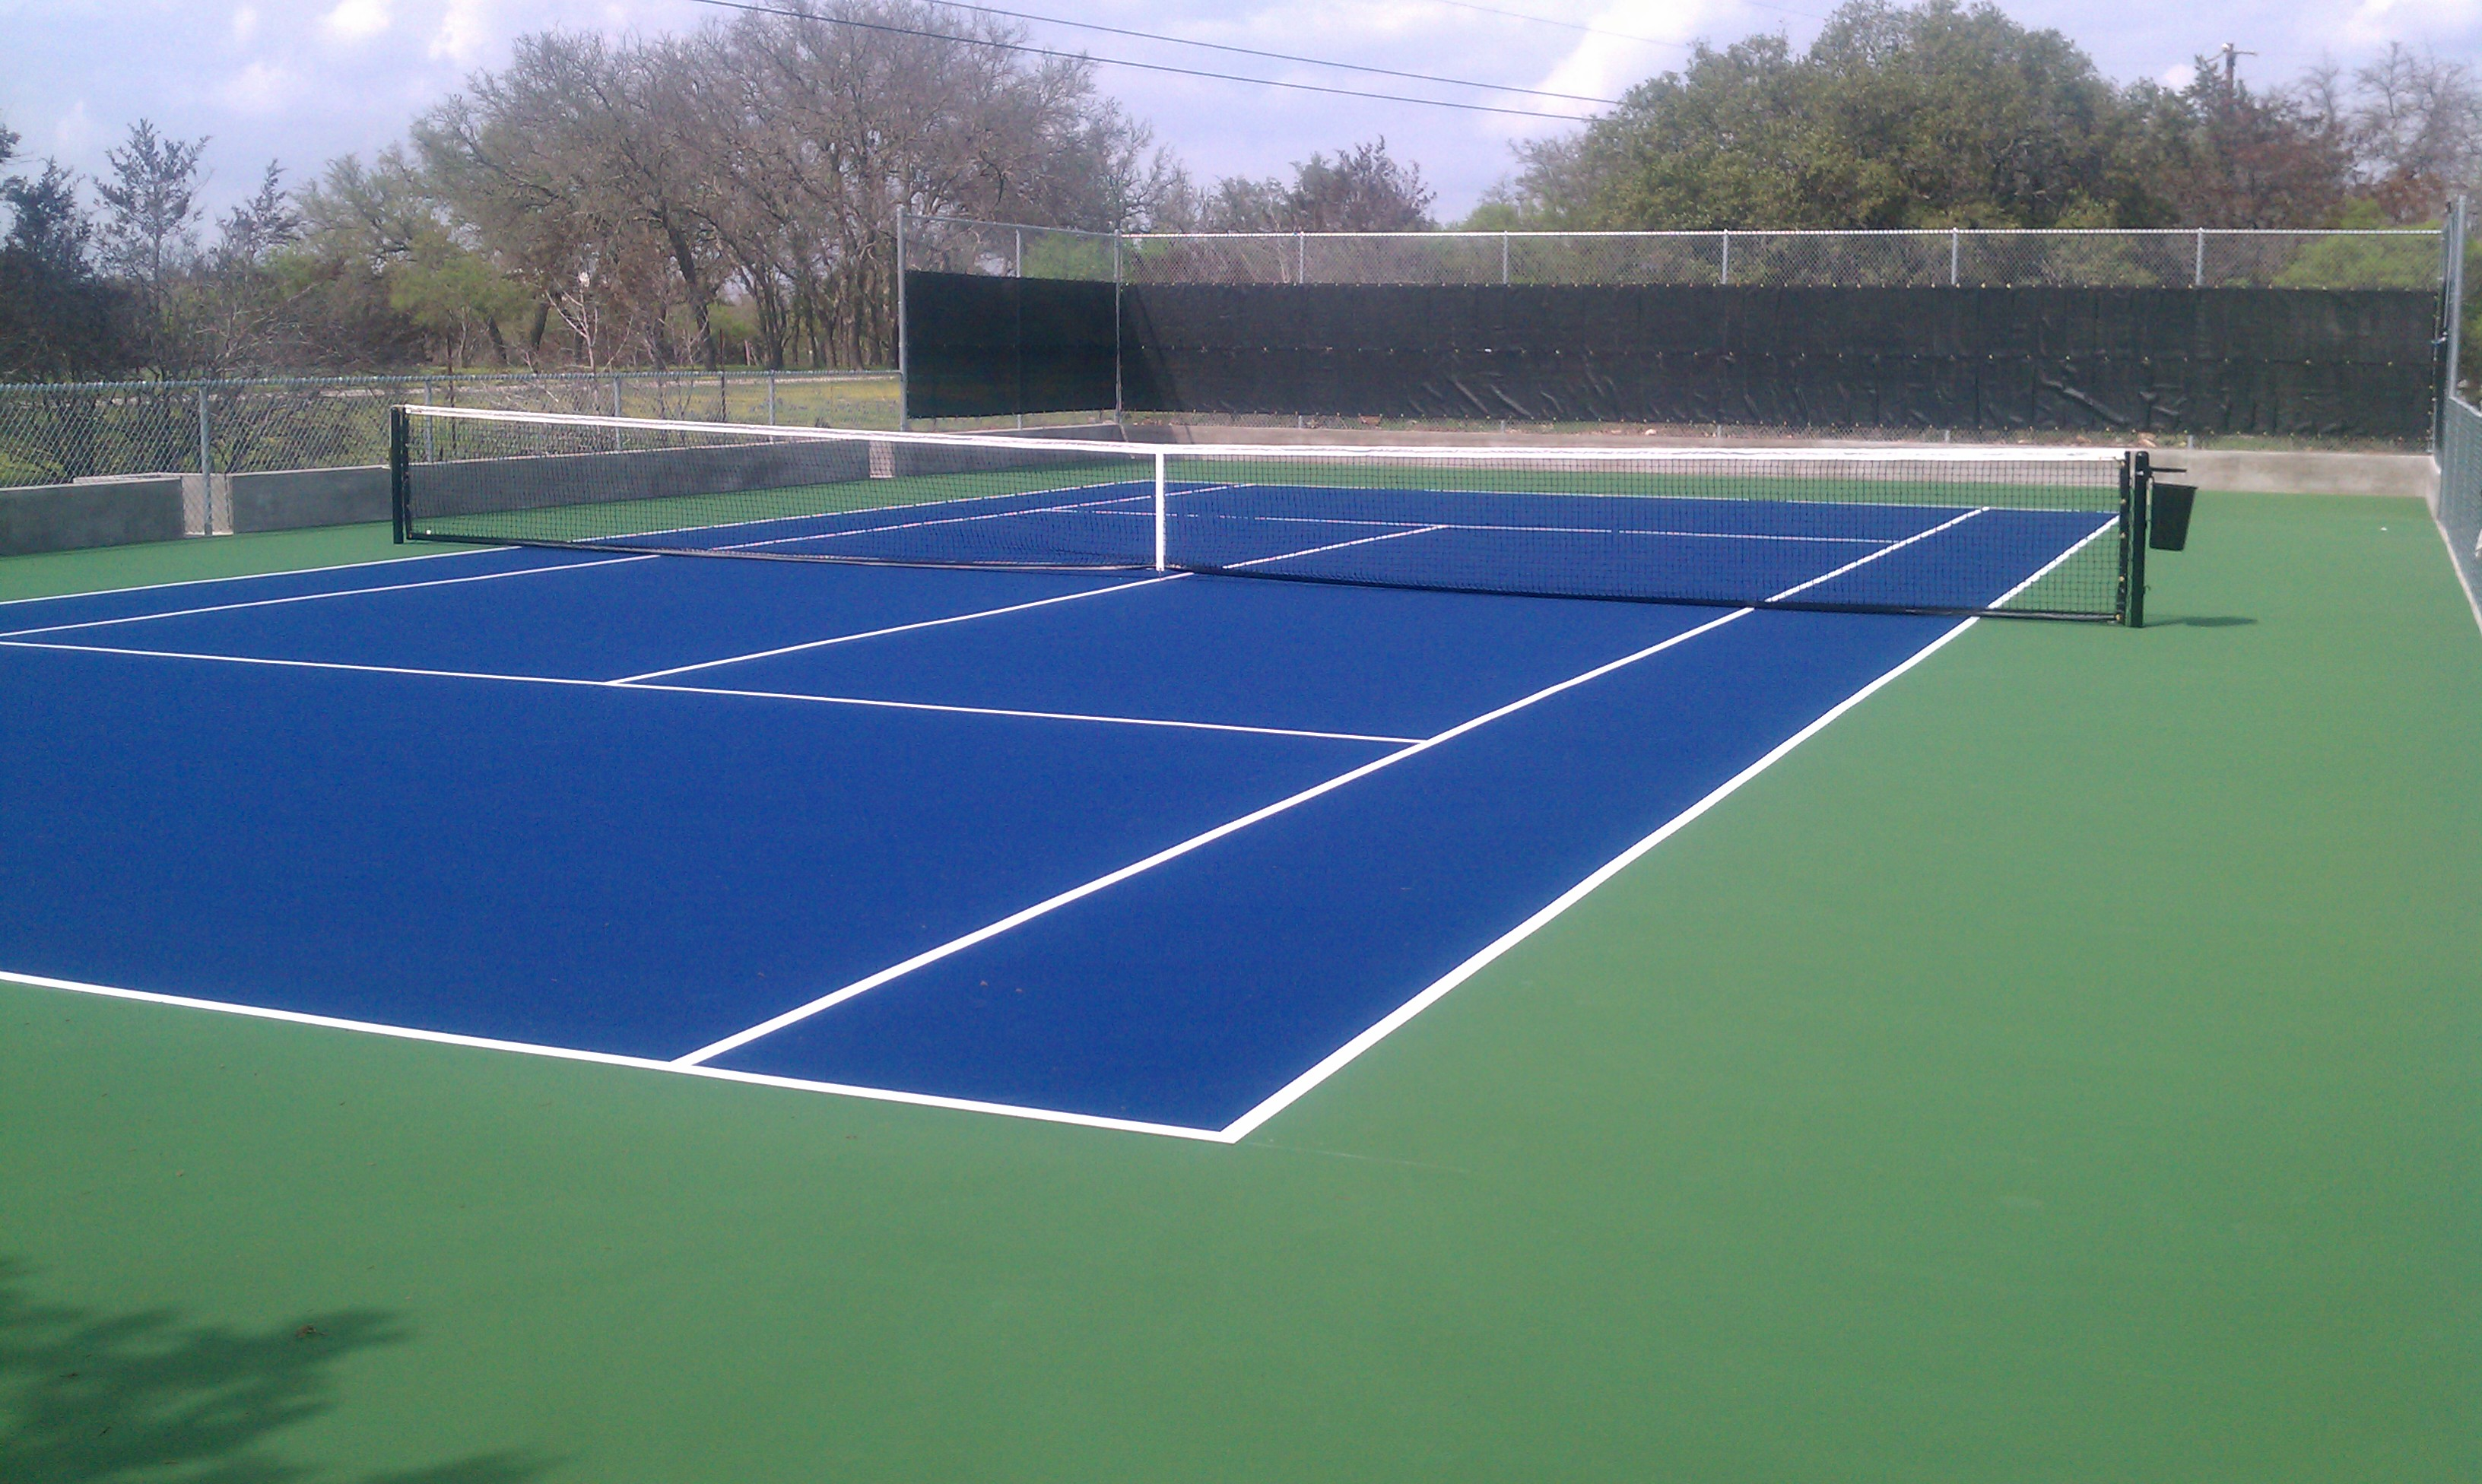 DTC Specializes In Residential And Commercial Tennis, Pickleball,  Basketball And Sport Courts Providing Construction, Resurfacing And  Equipment With ...